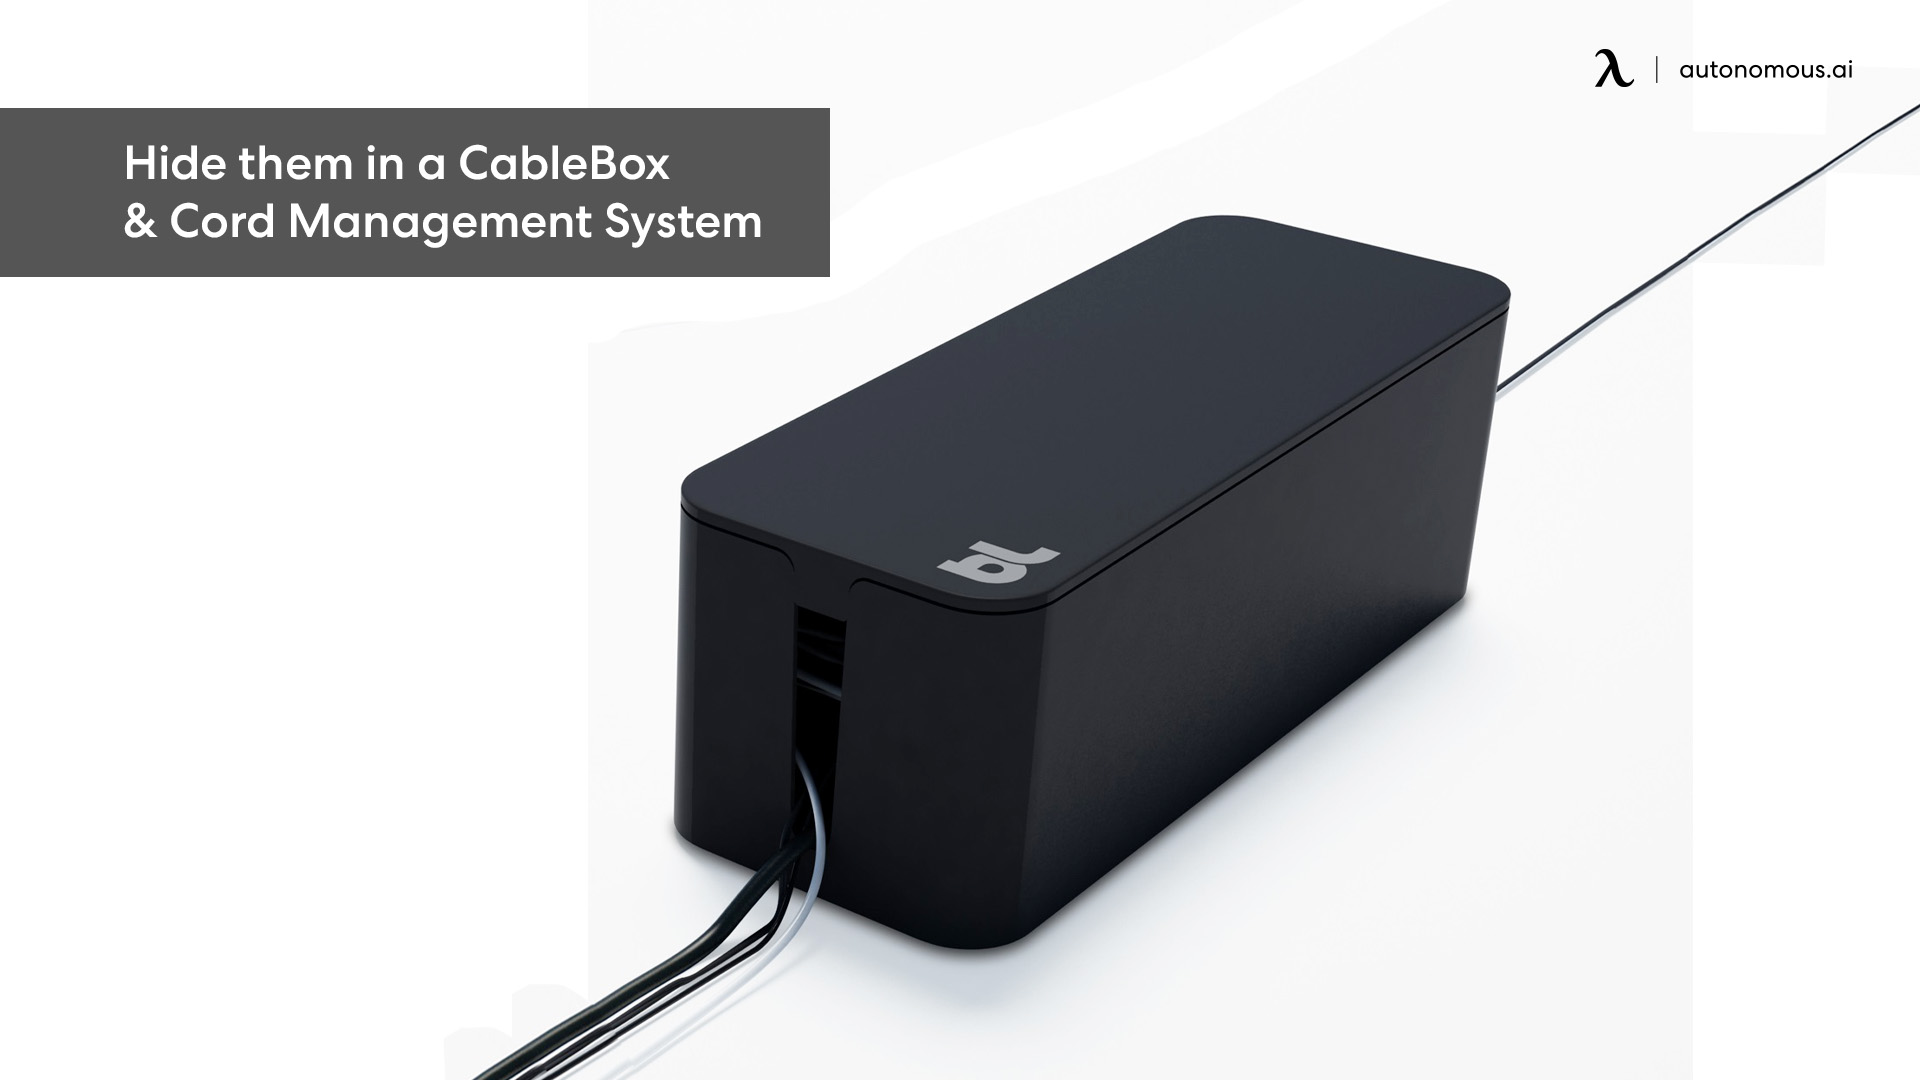 Cord Management System